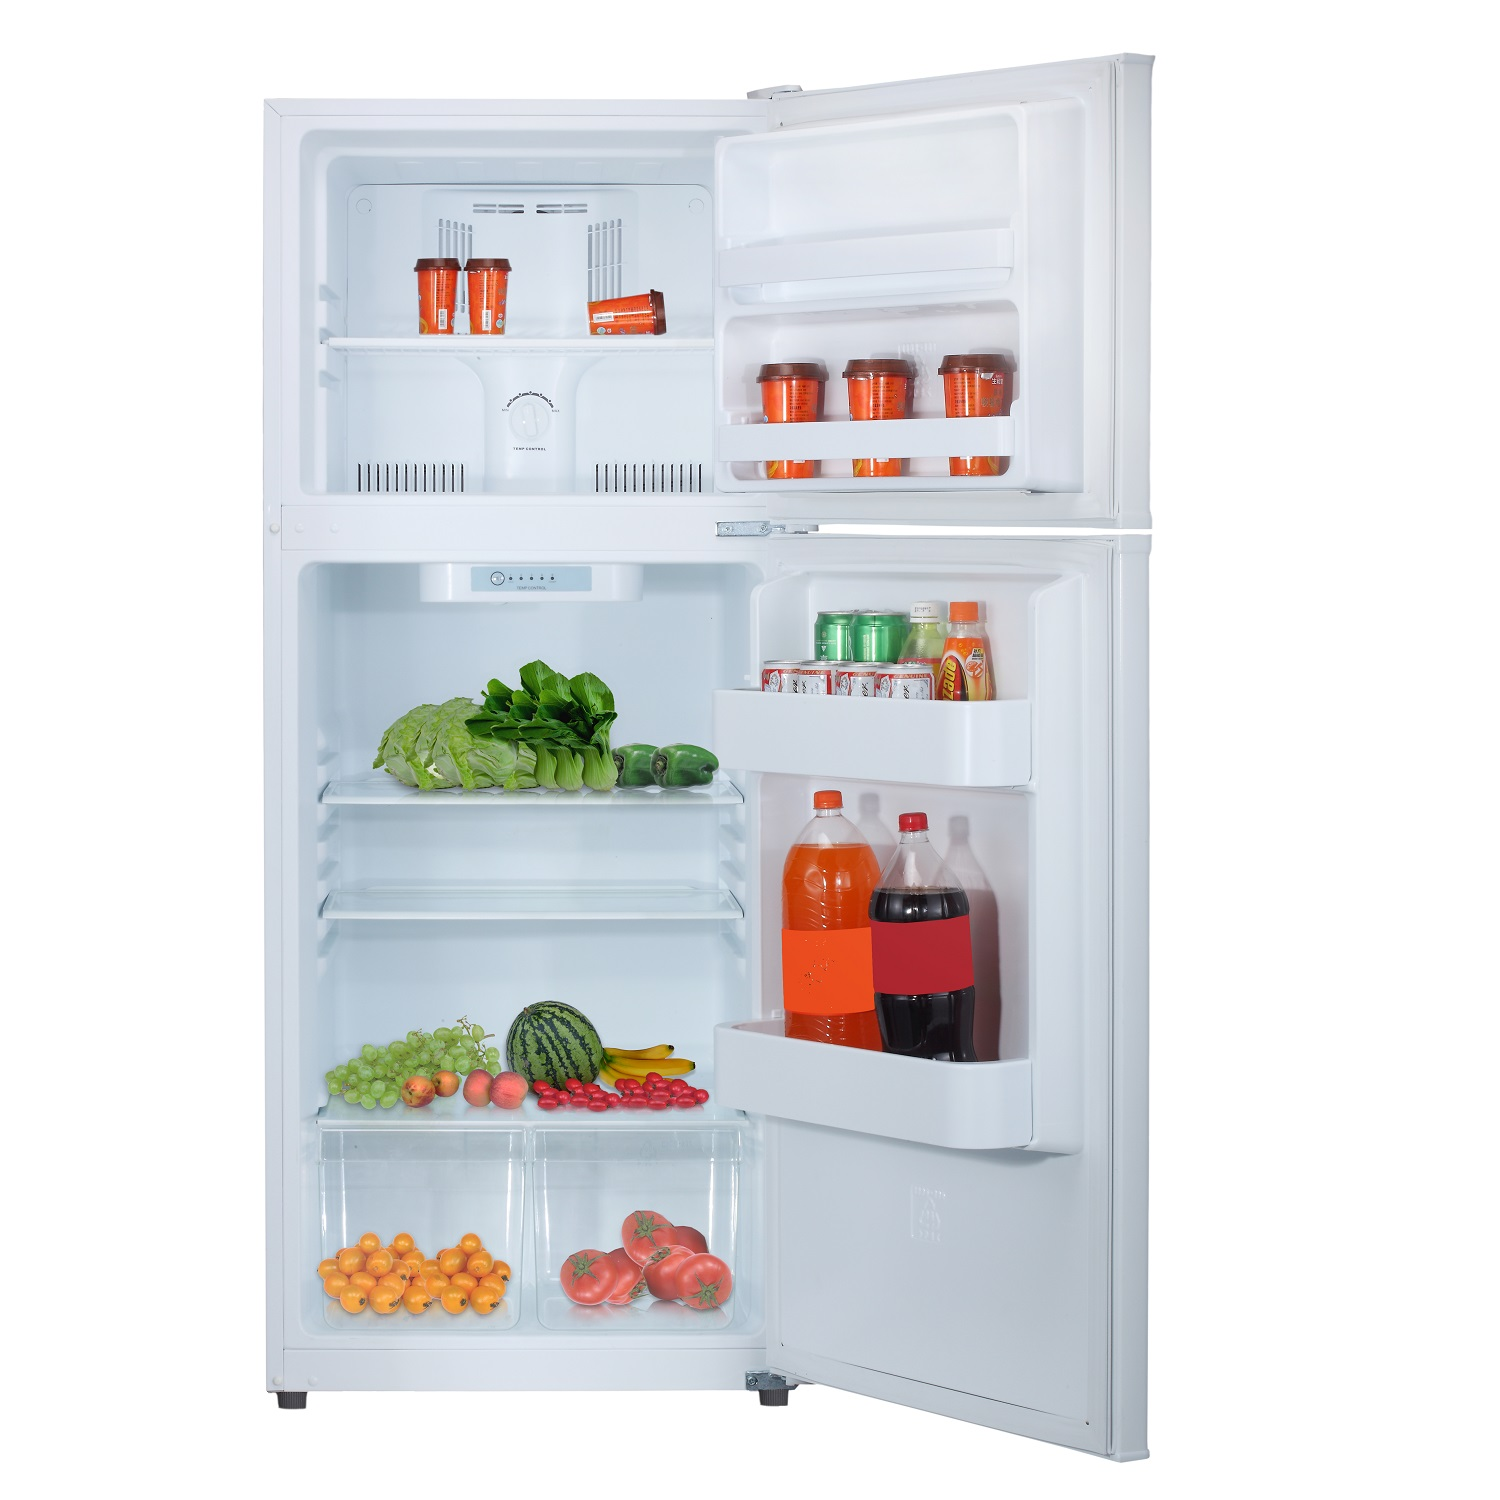 RF 366-99 SS 9.9 Cu. Ft. Frost Free Top Freezer Refrigerator in Stainless Steel